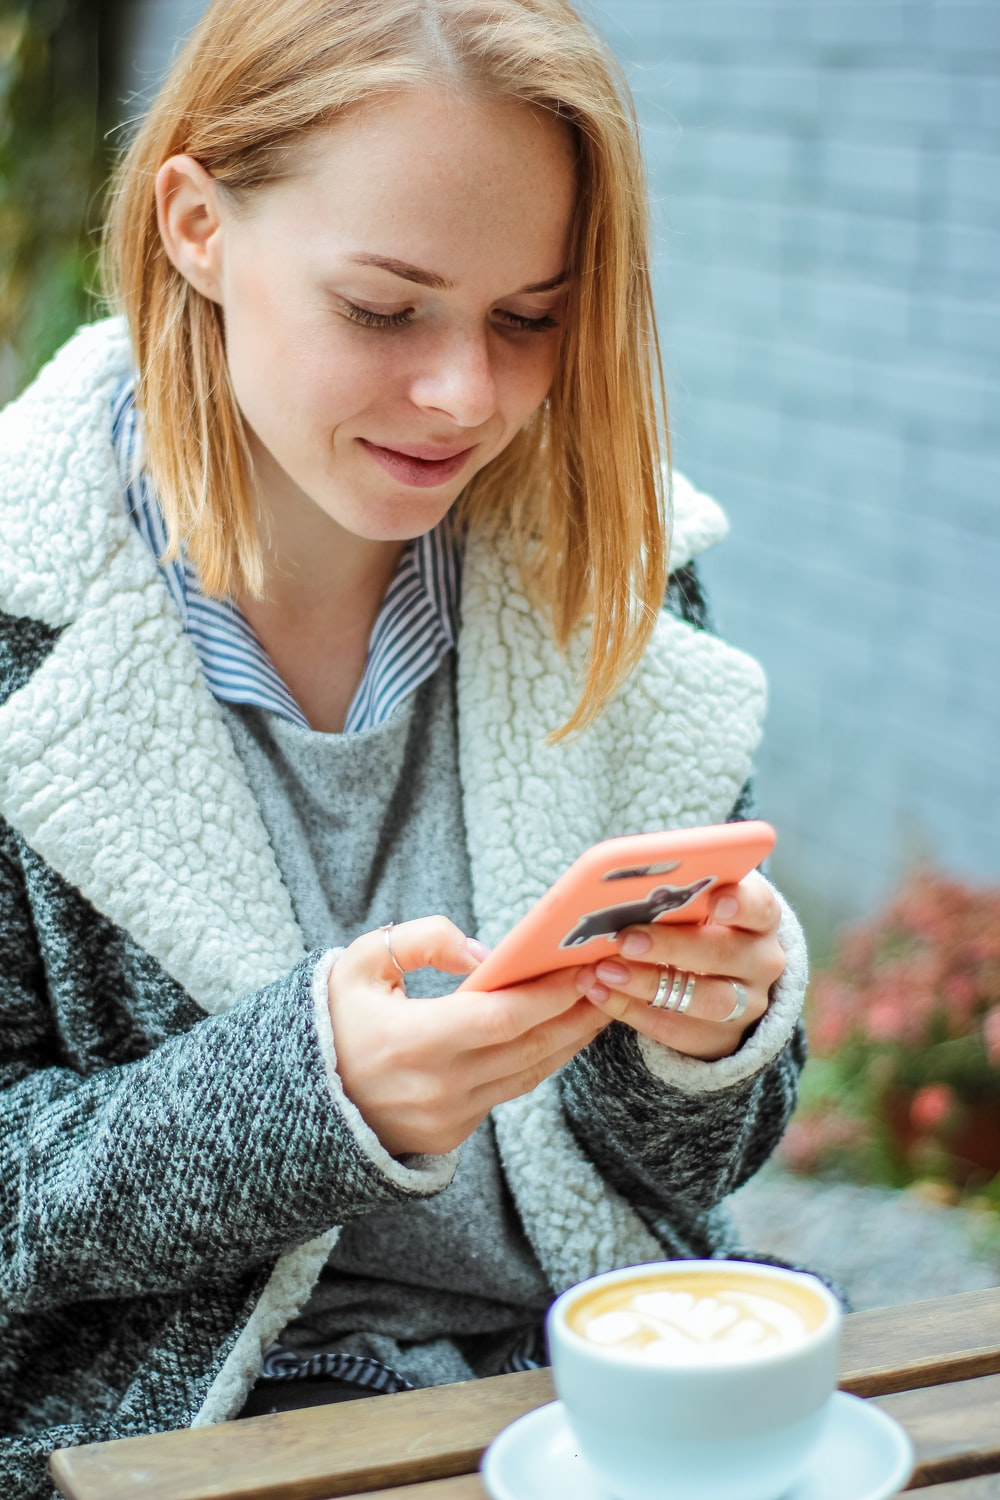 woman smiling while using her phone